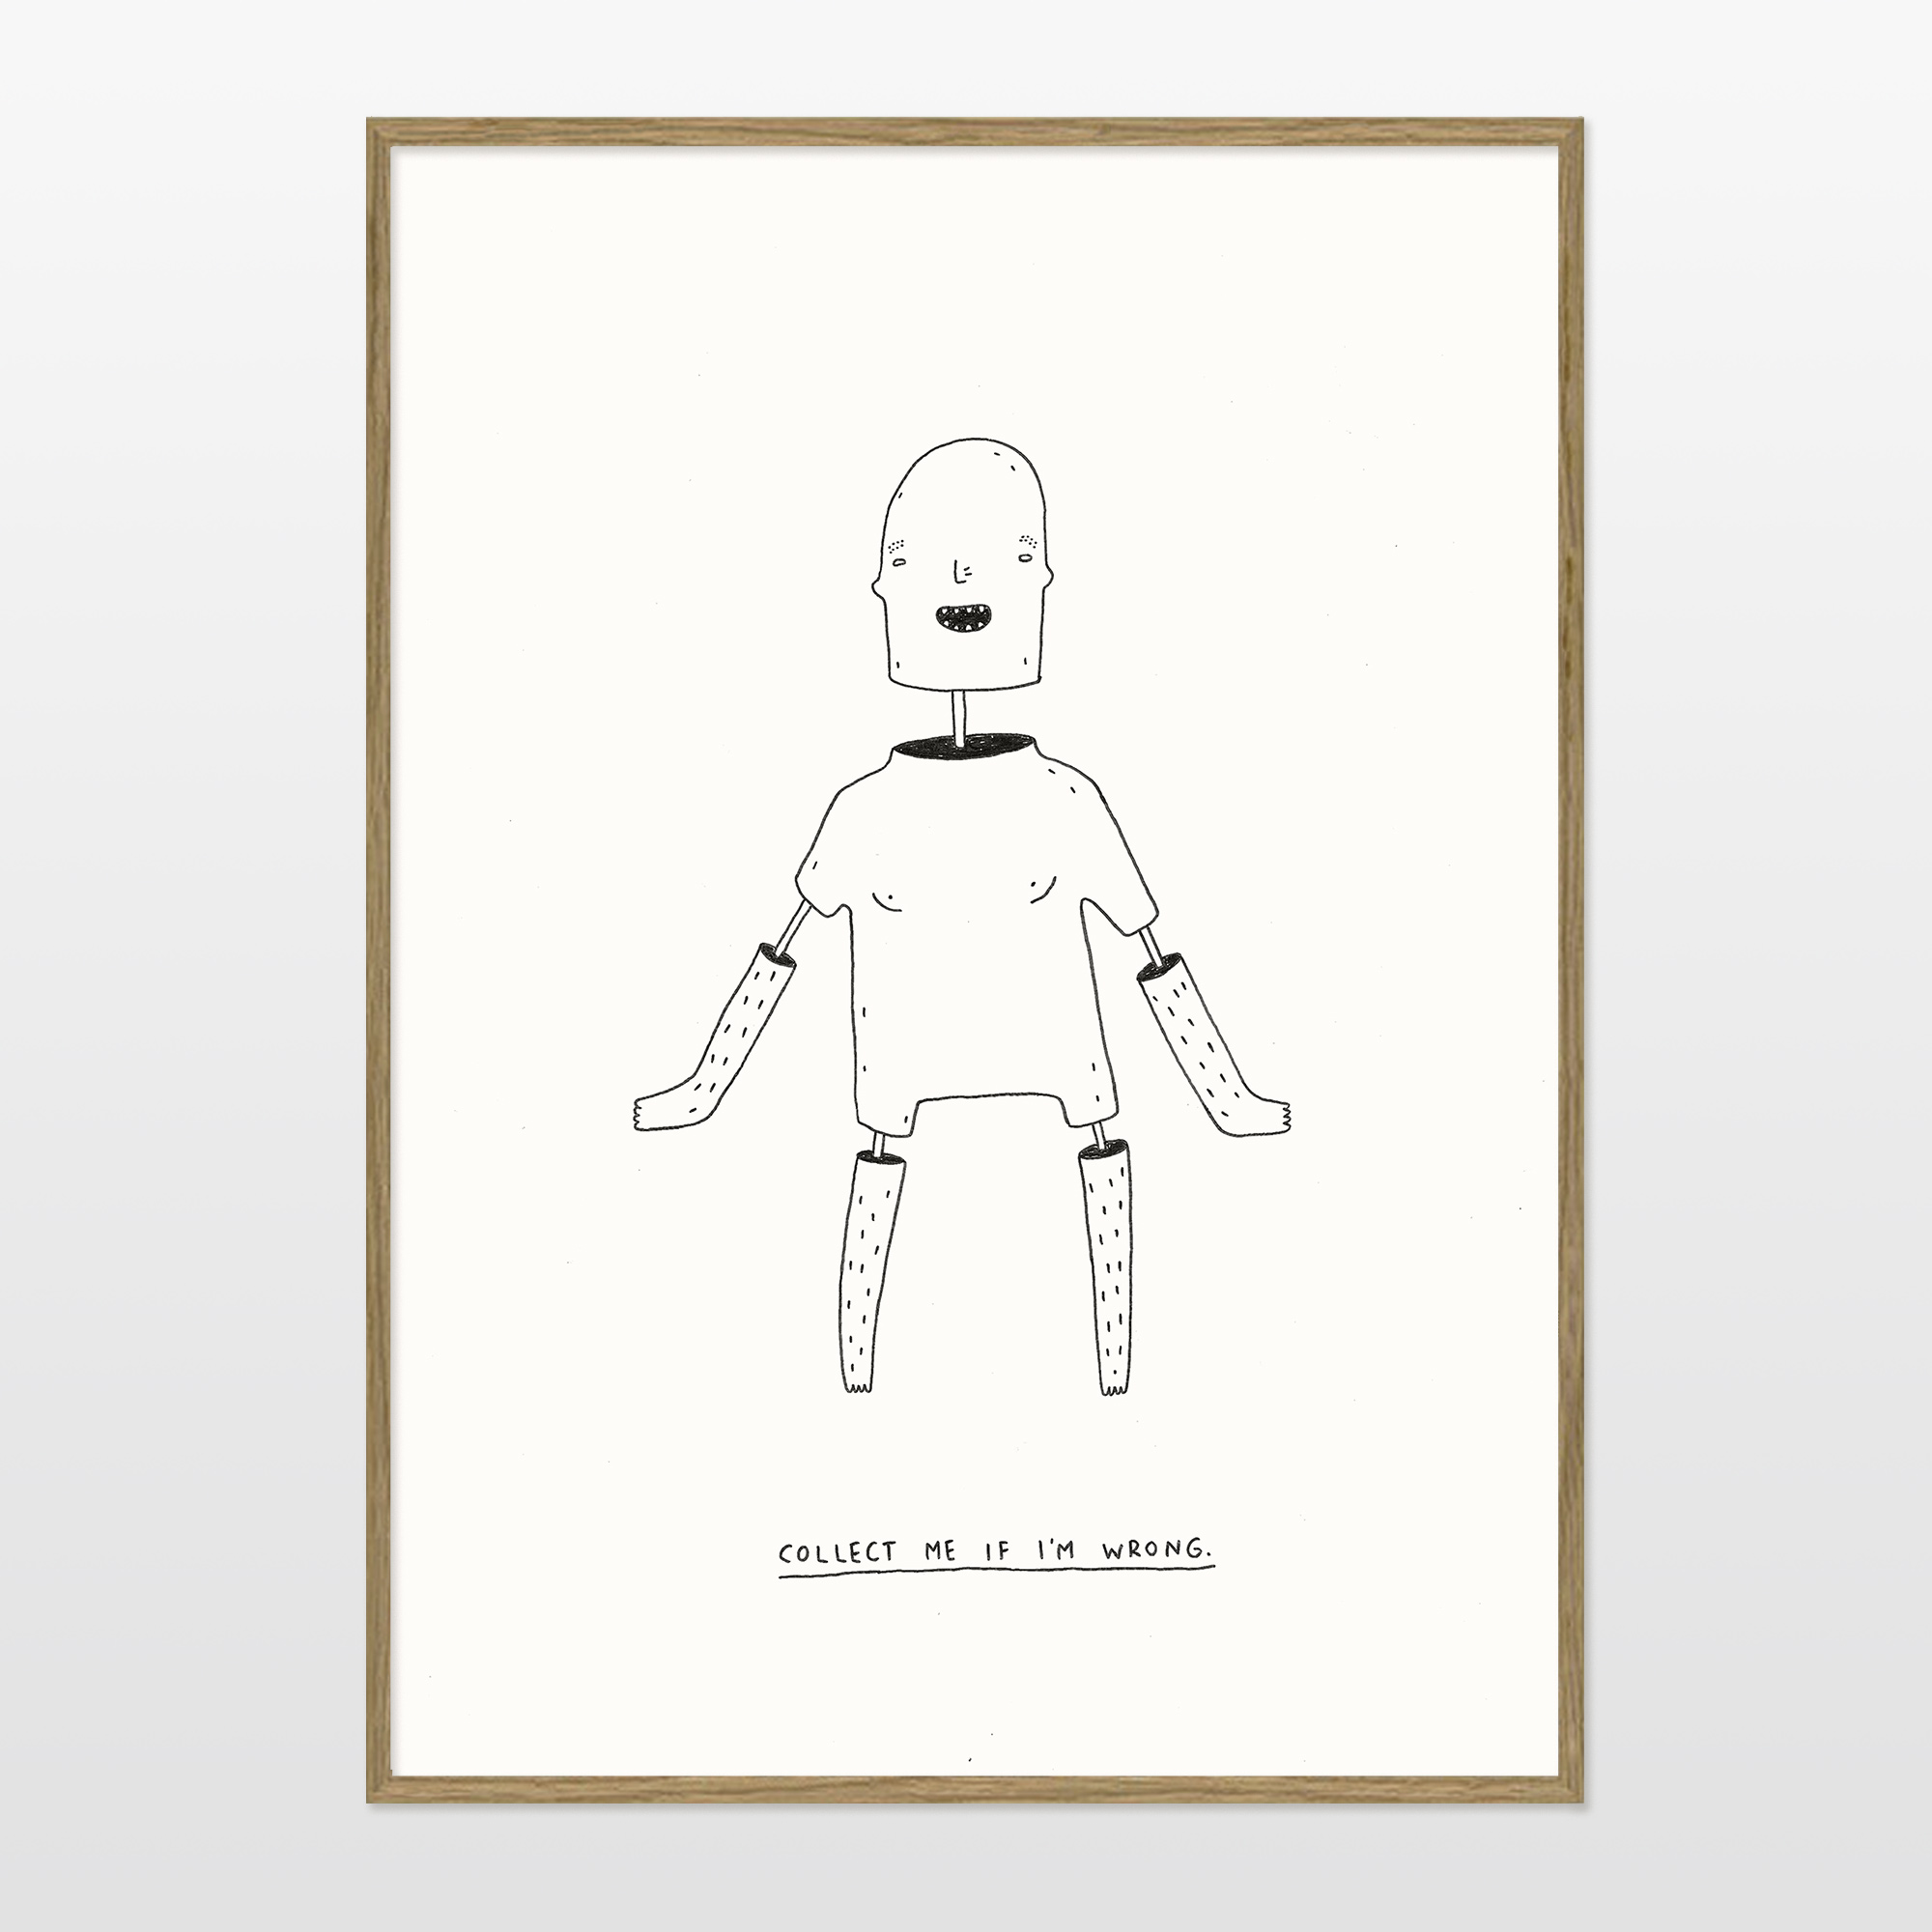 posters-prints, giclee-print, family-friendly, illustrative, minimalistic, humor, moods, people, black, white, ink, paper, amusing, cute, danish, decorative, design, interior, interior-design, modern, modern-art, nordic, posters, prints, scandinavien, Buy original high quality art. Paintings, drawings, limited edition prints & posters by talented artists.